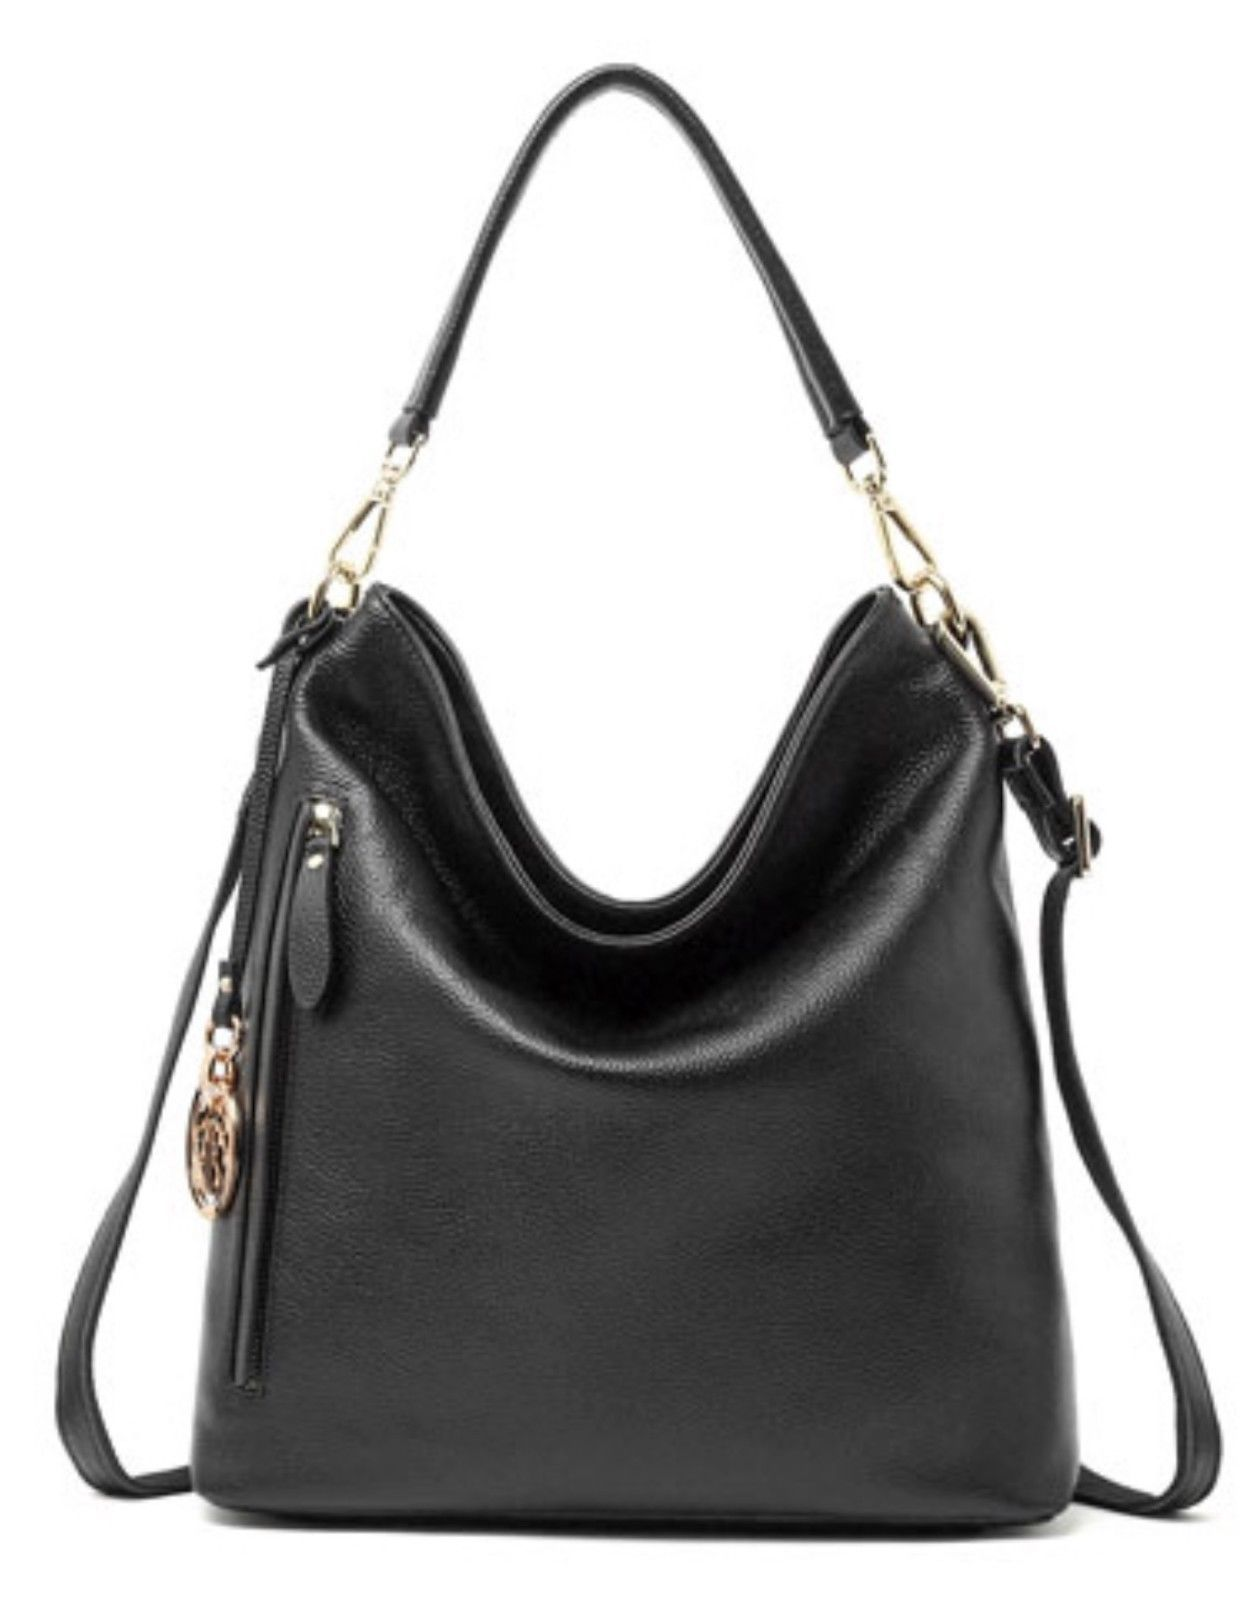 New Pebbled Italian Leather Hobo Handbag Shoulder Bag Purse 2205